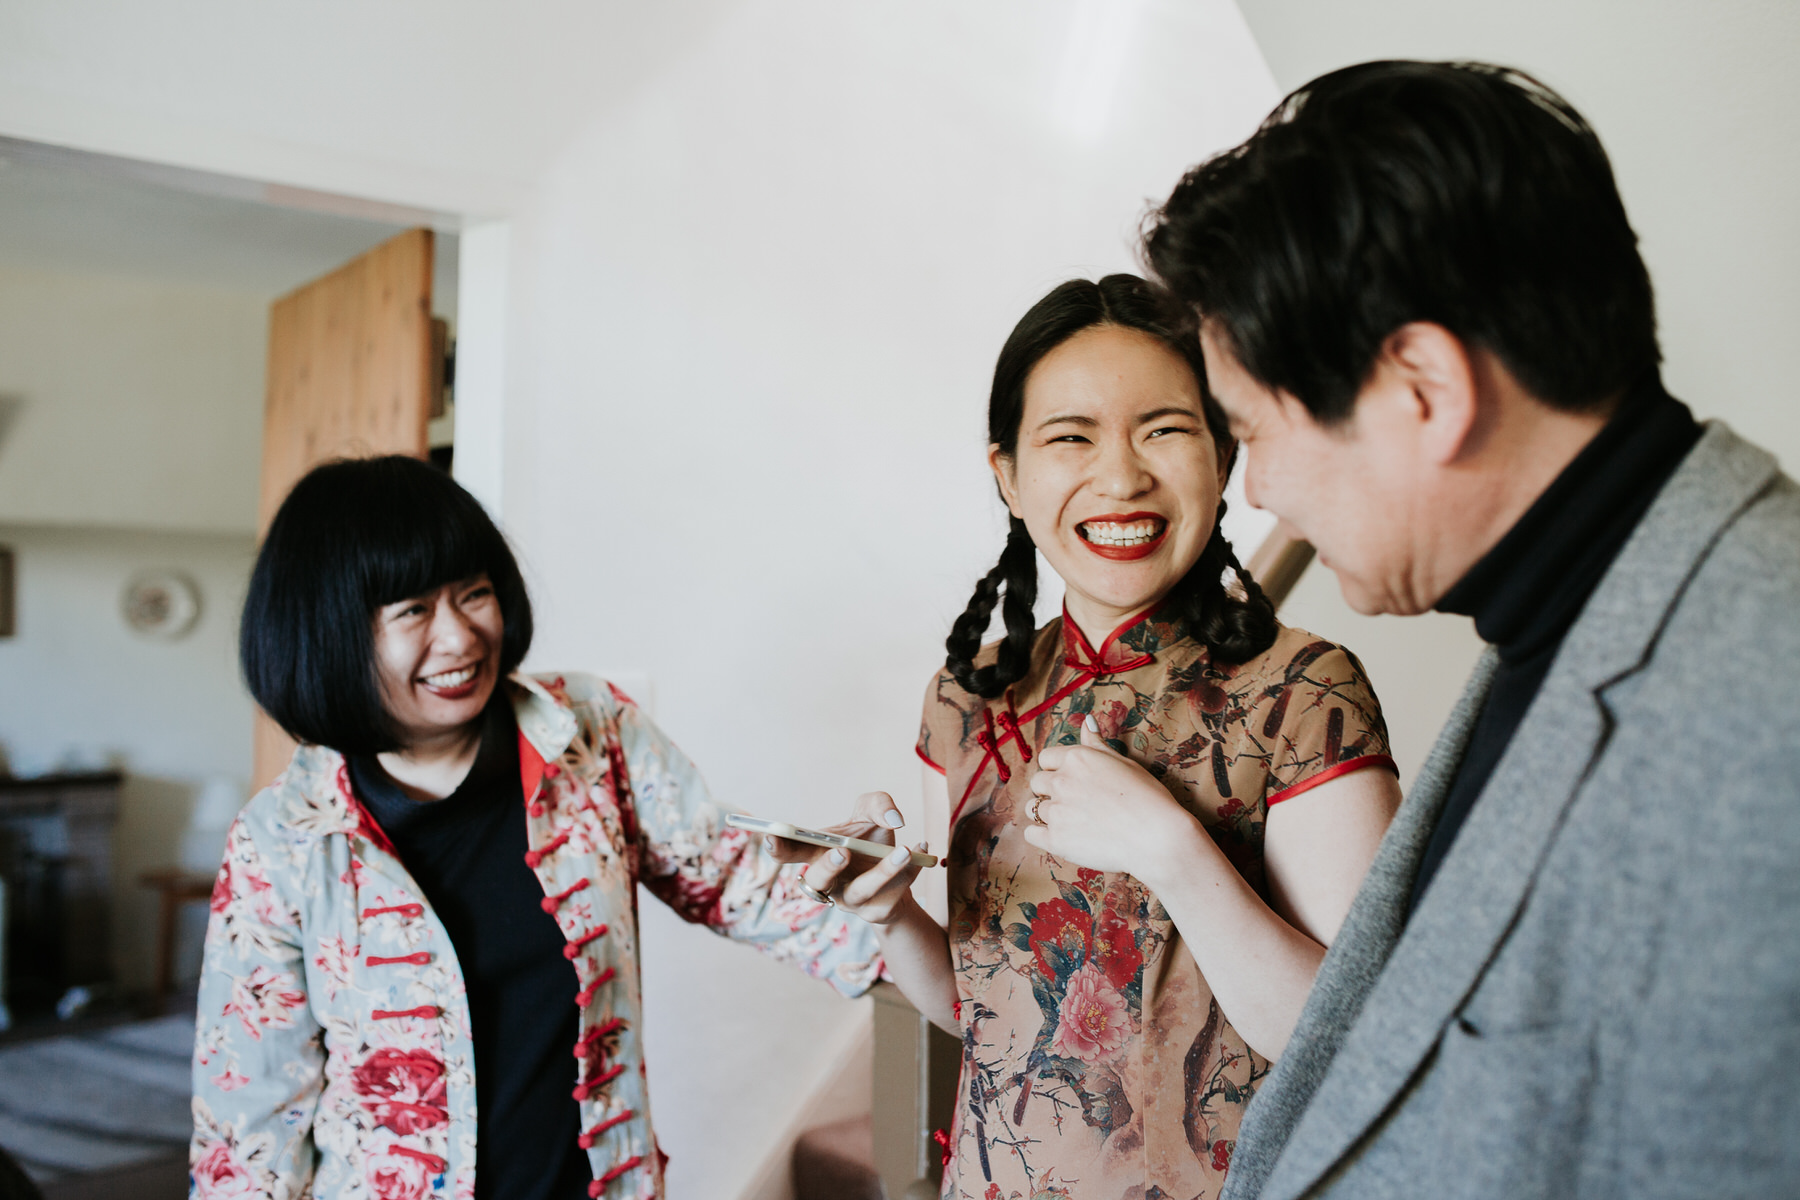 91 bride traditional Chinese dress laughing parents.jpg